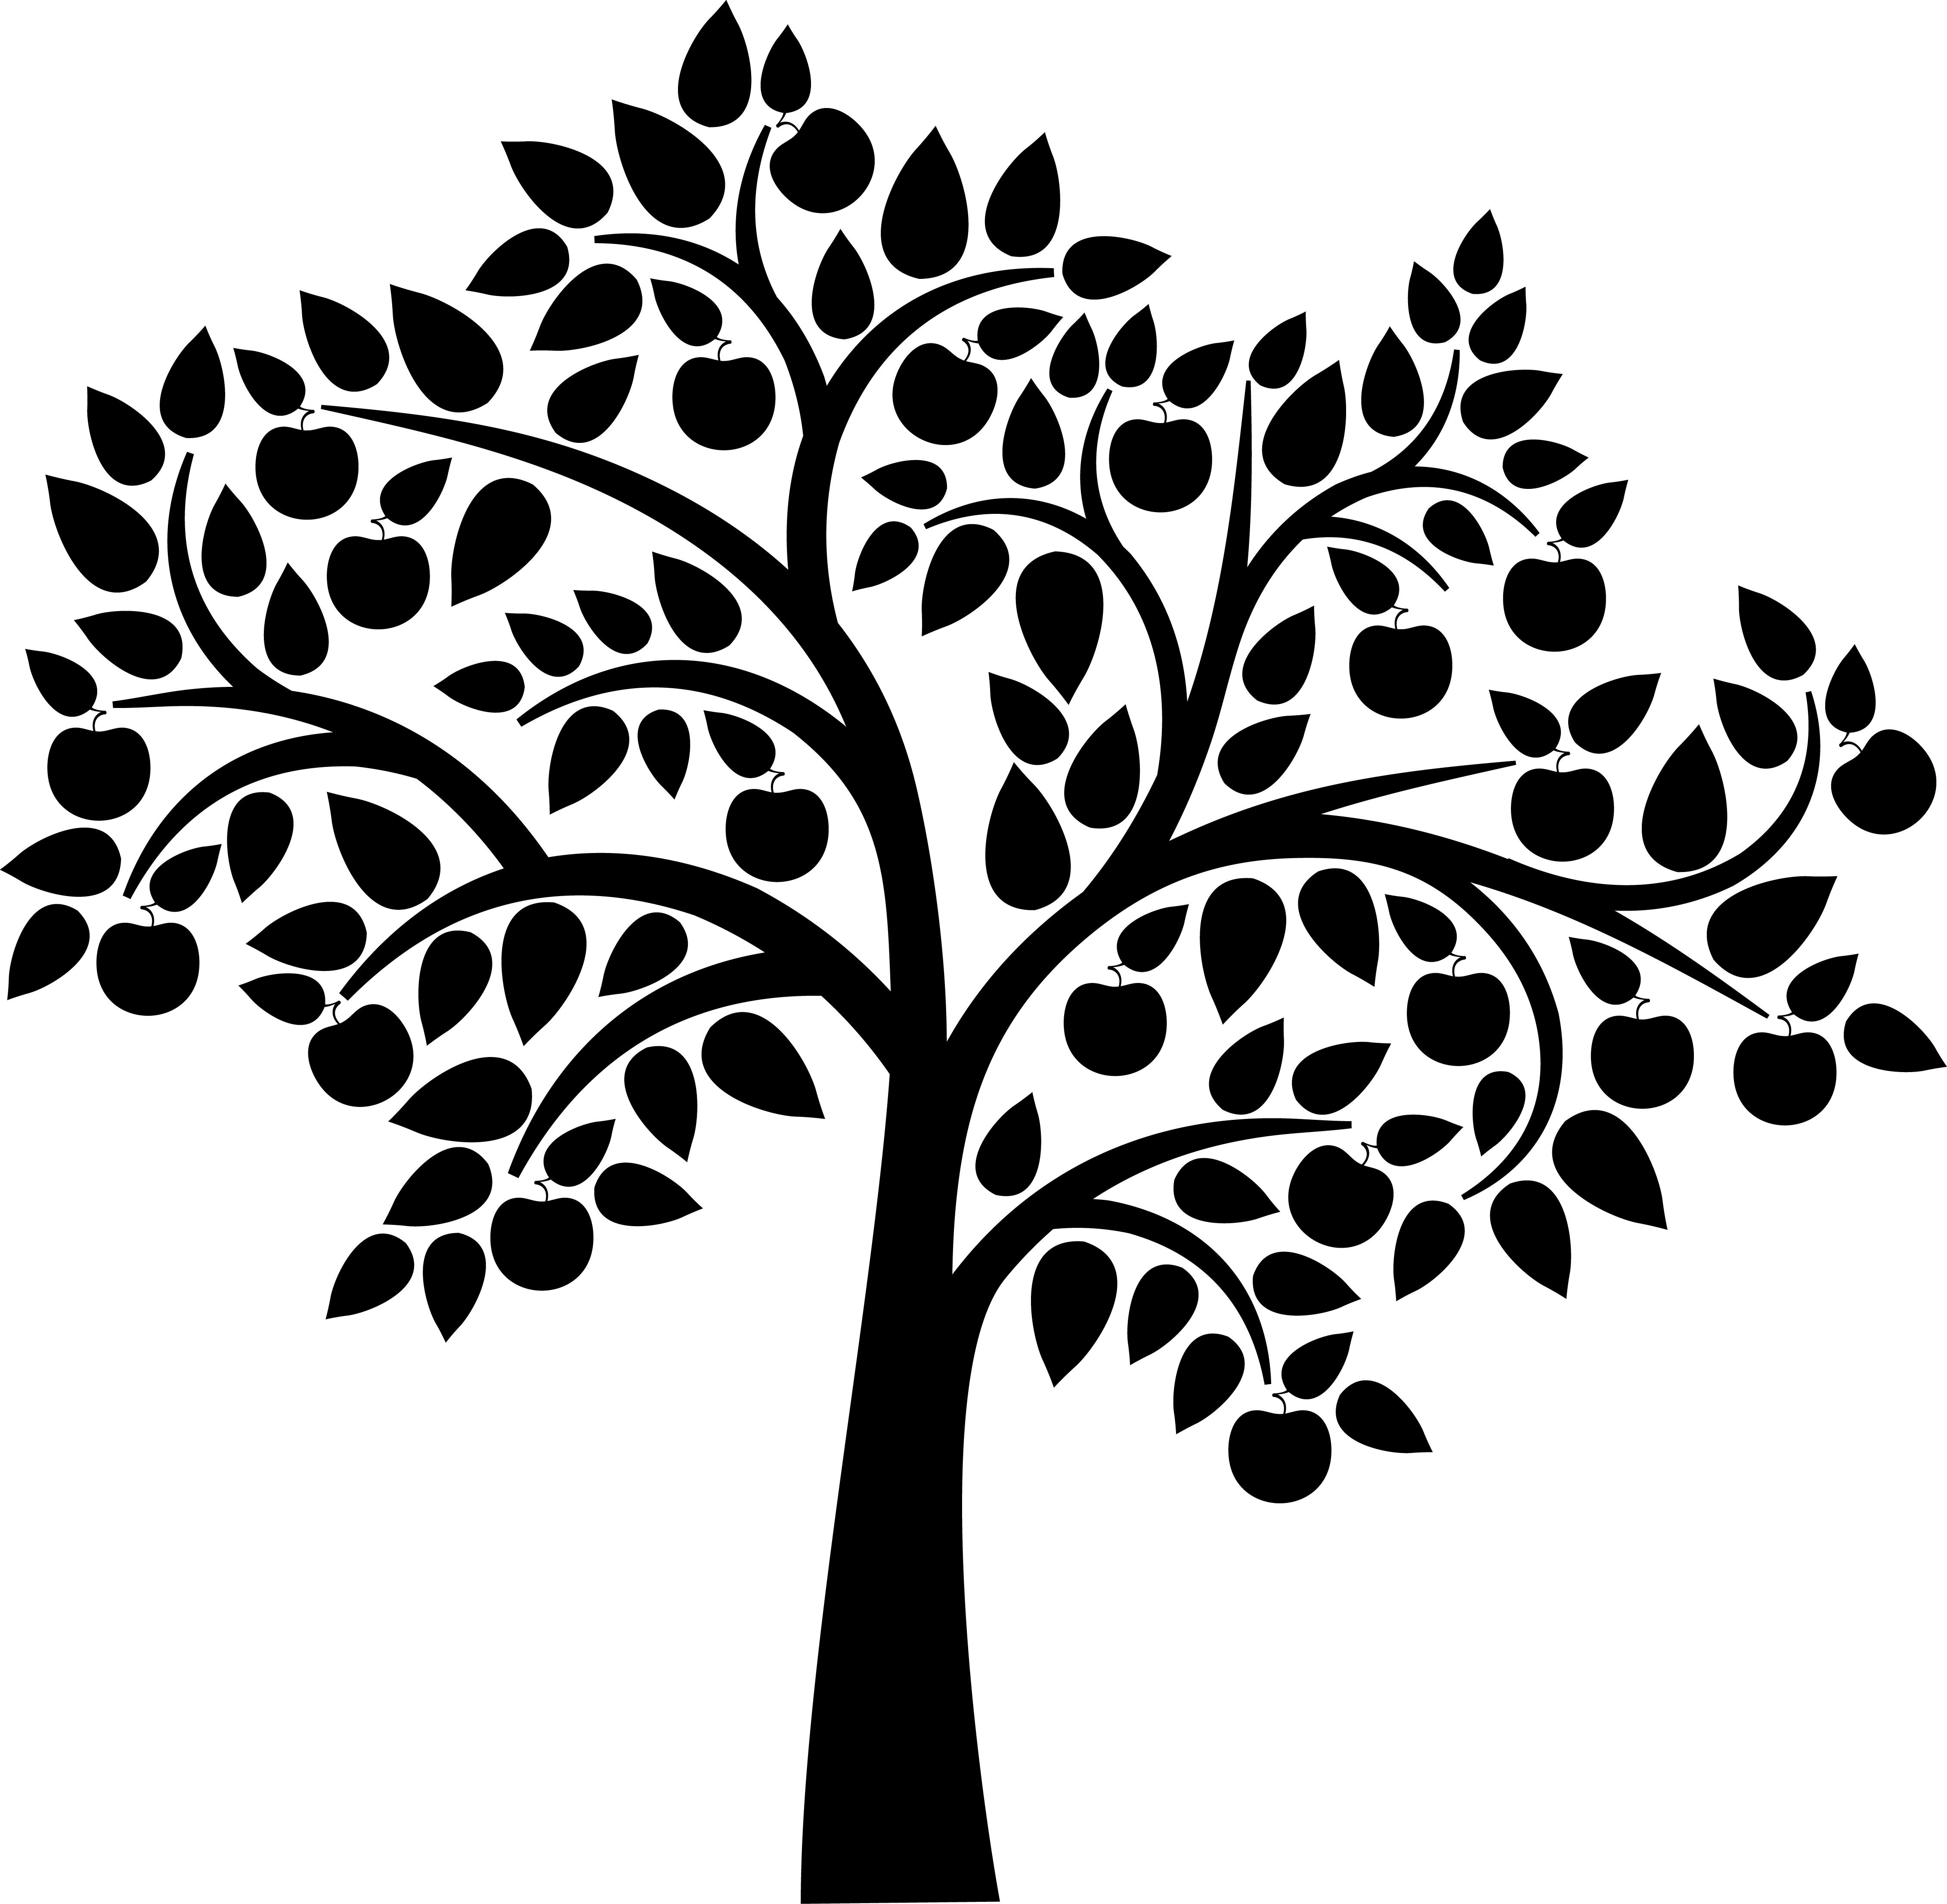 Apple tree chopped down clipart vector royalty free Pin by Emily Ritger on Solo   Tree graphic, Tree clipart, Tree stencil vector royalty free